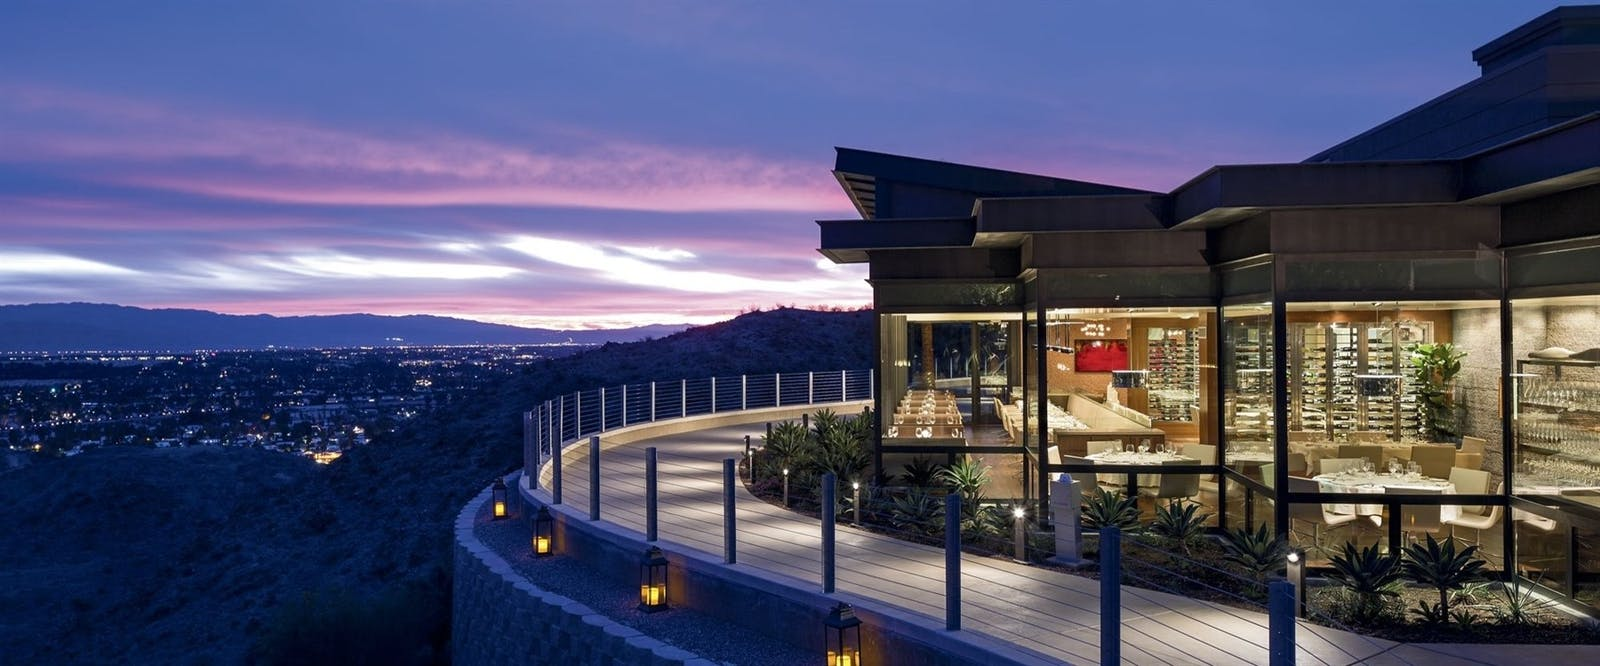 The Edge Steakhouse at The Ritz-Carlton, Rancho Mirage